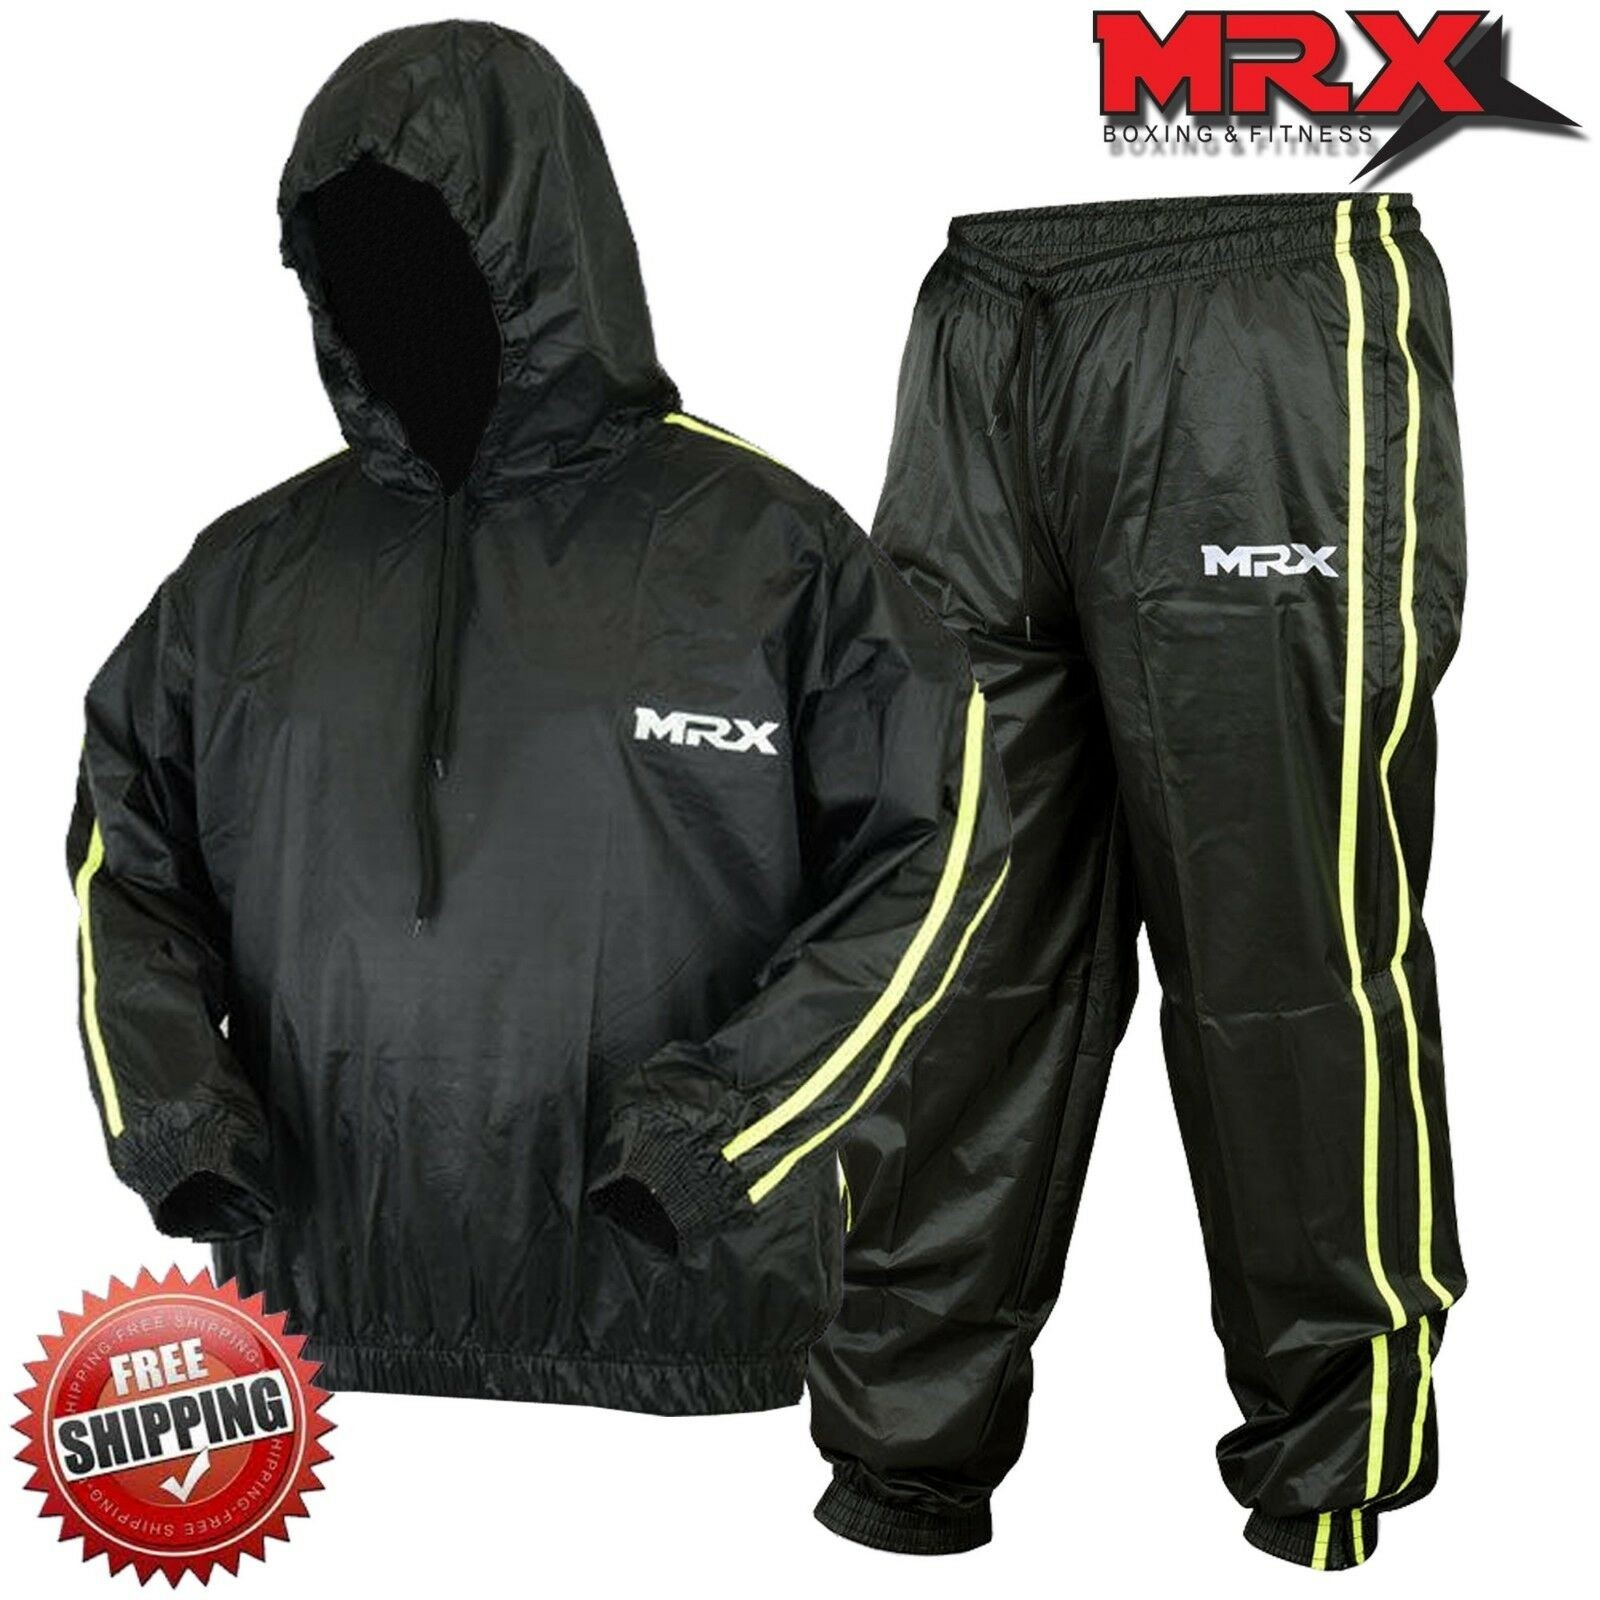 MRX Sauna Sweat Suit Weight Loss Slimming Fitness Suits